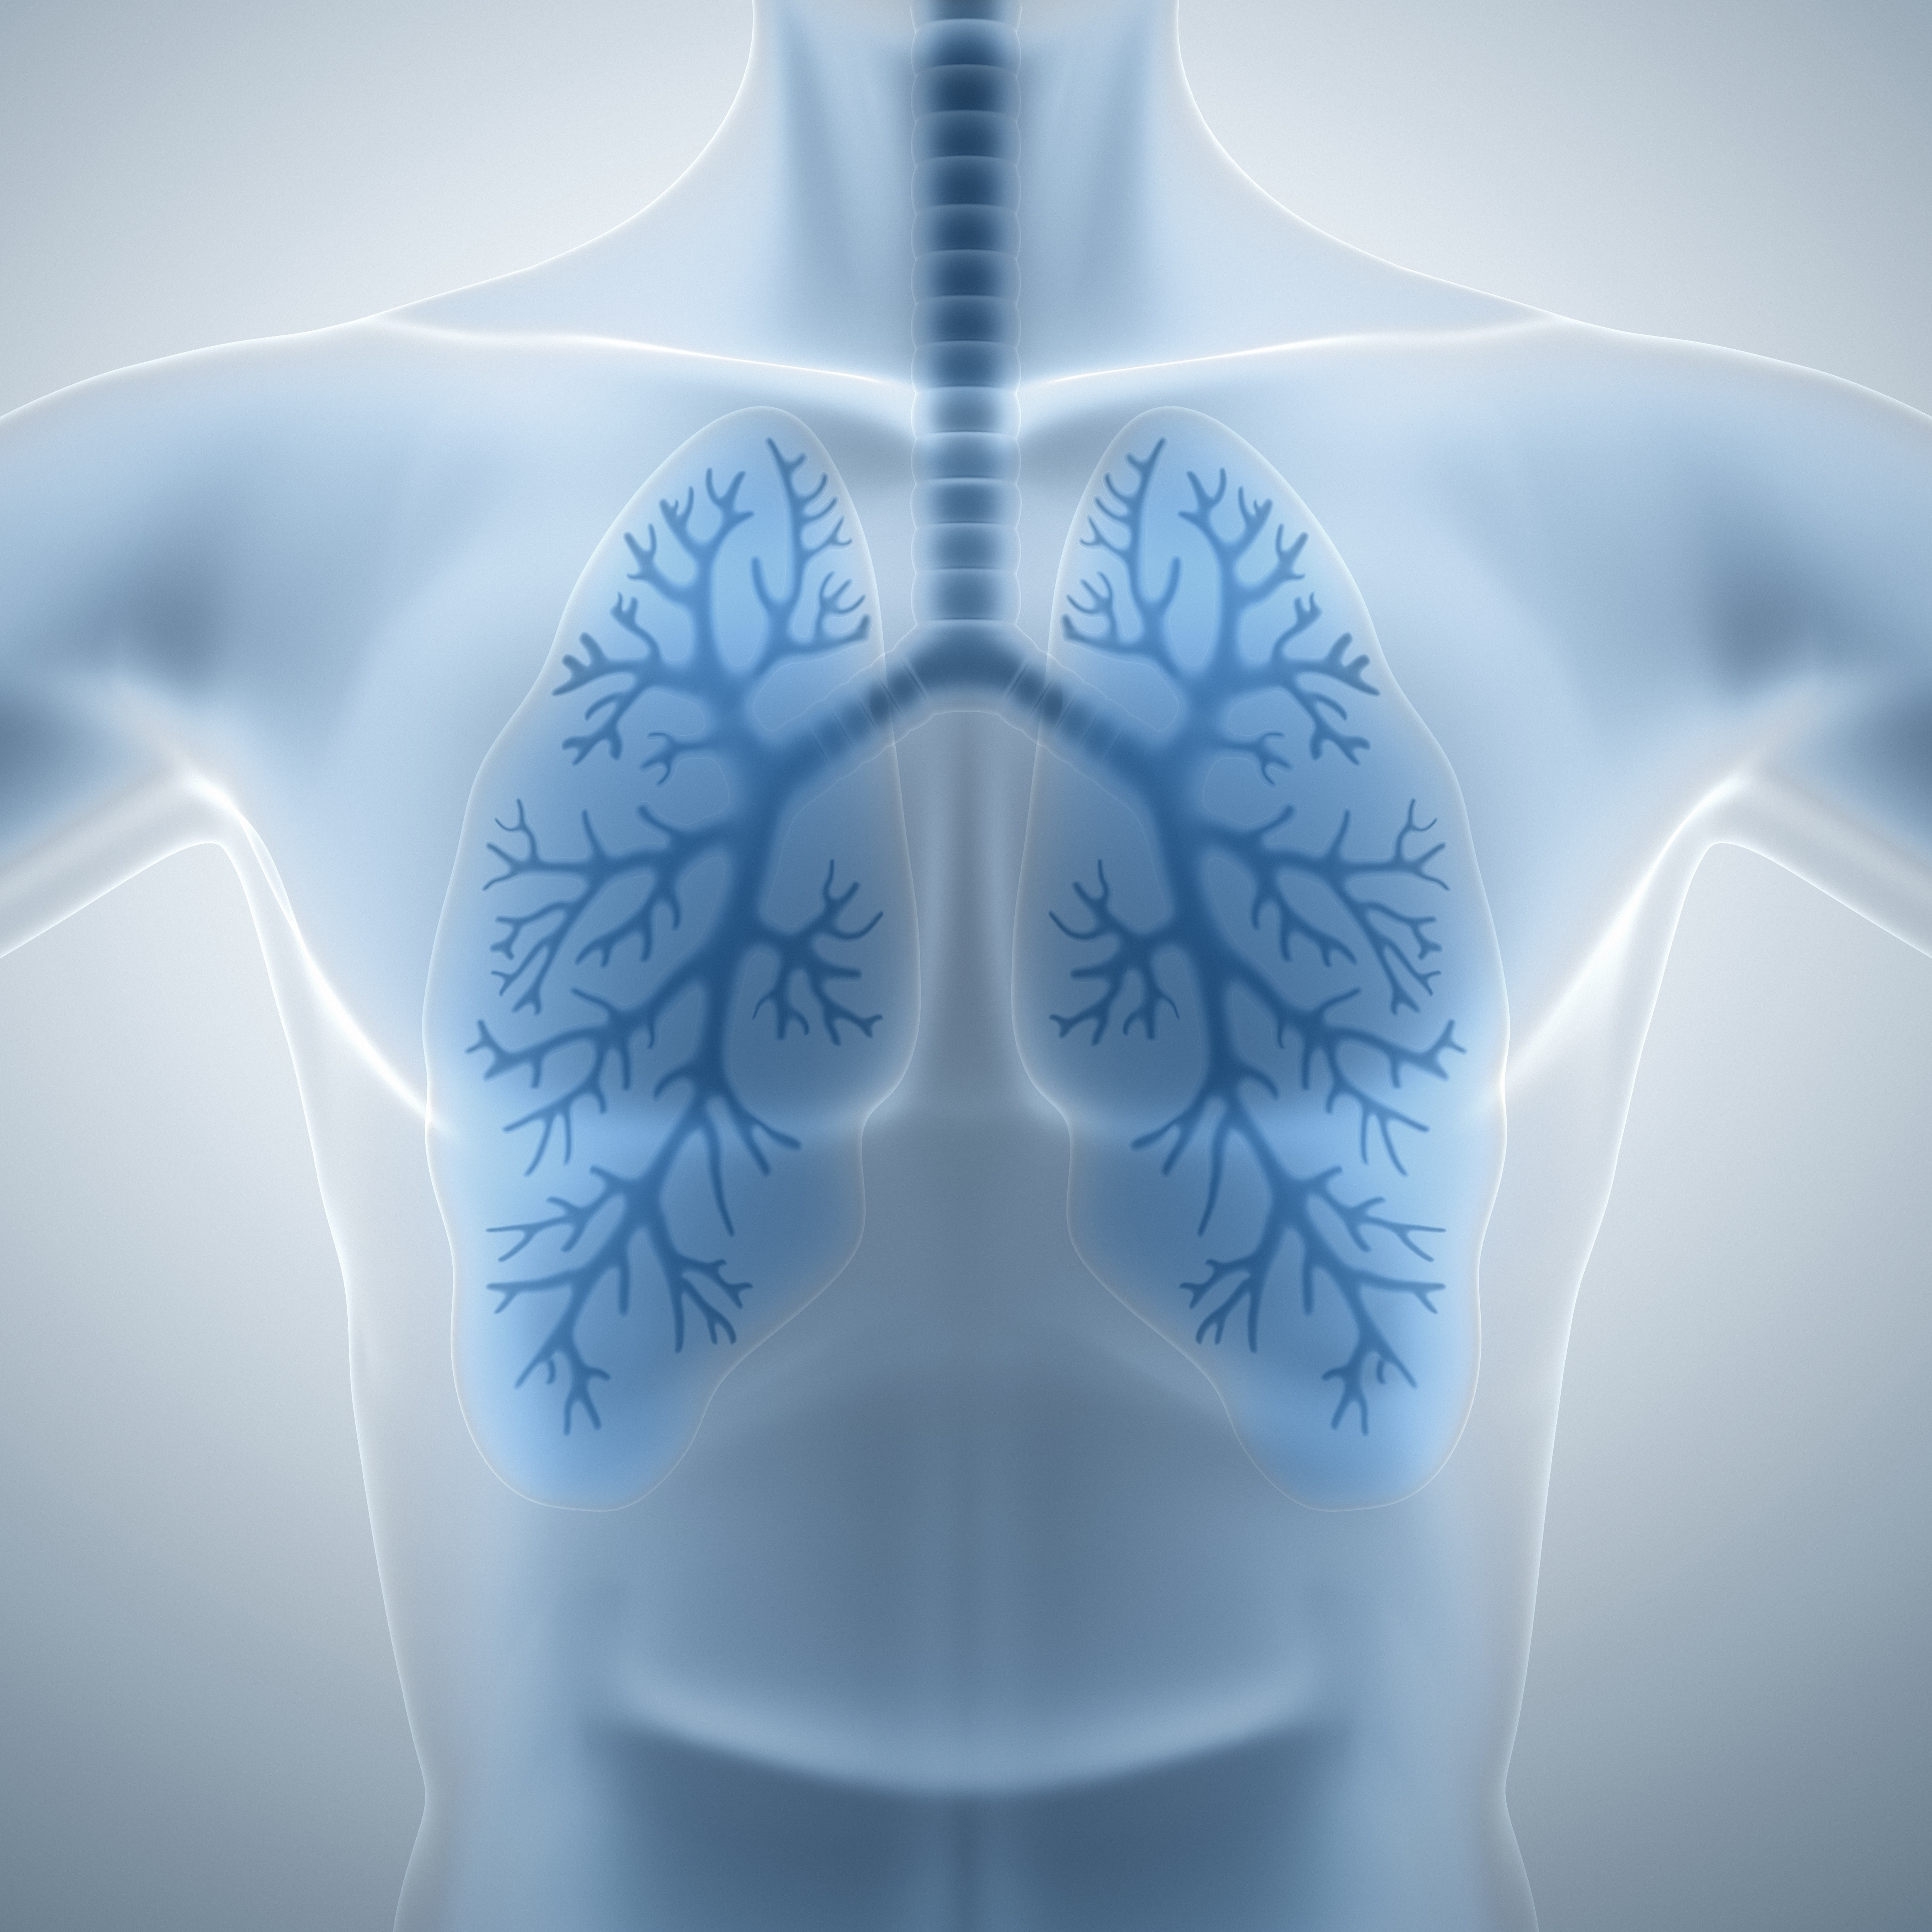 Metabolic Fingerprints May Correlate With Disease Progression in Cystic Fibrosis